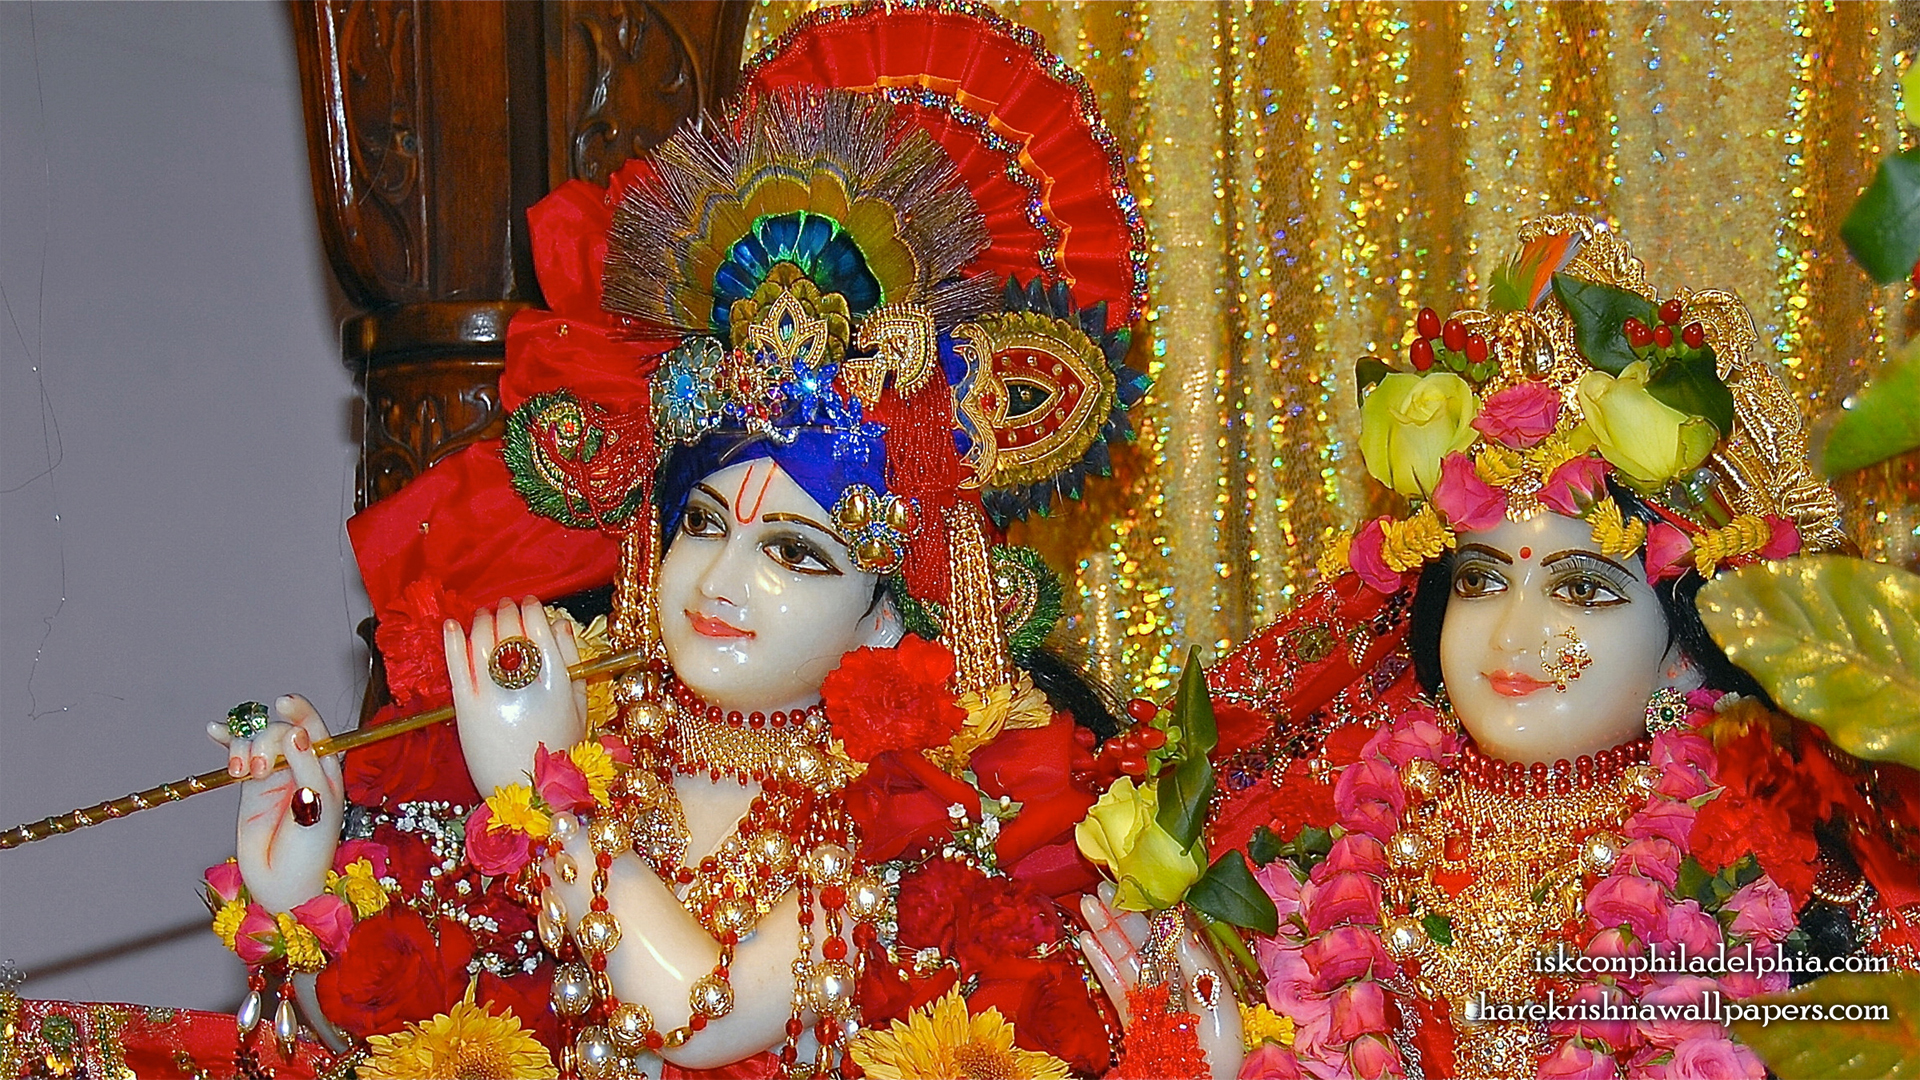 Sri Sri Radha Krishna Close up Wallpaper (009) Size 1920x1080 Download